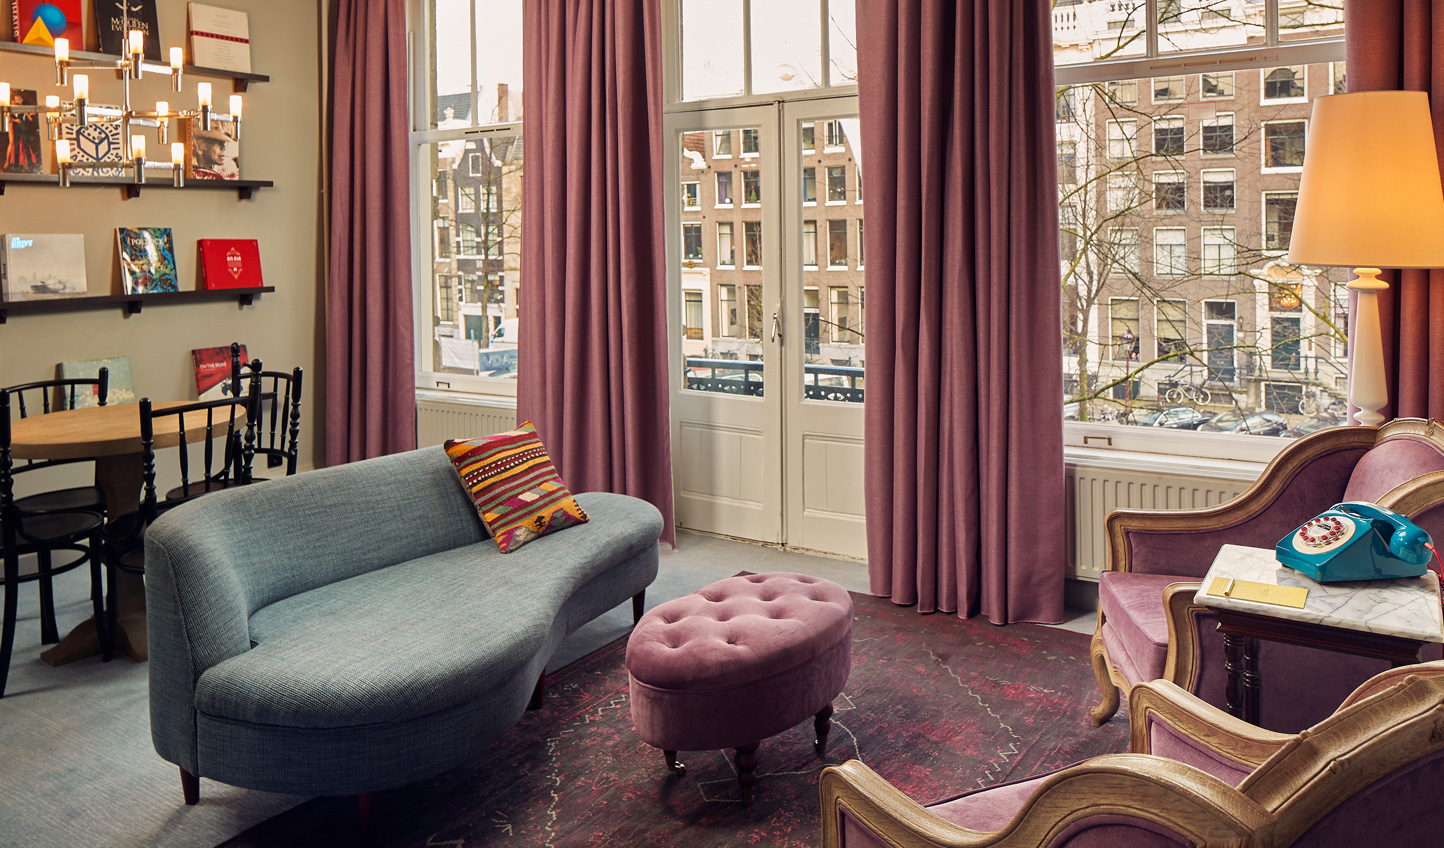 Luxury Hotels in Amsterdam